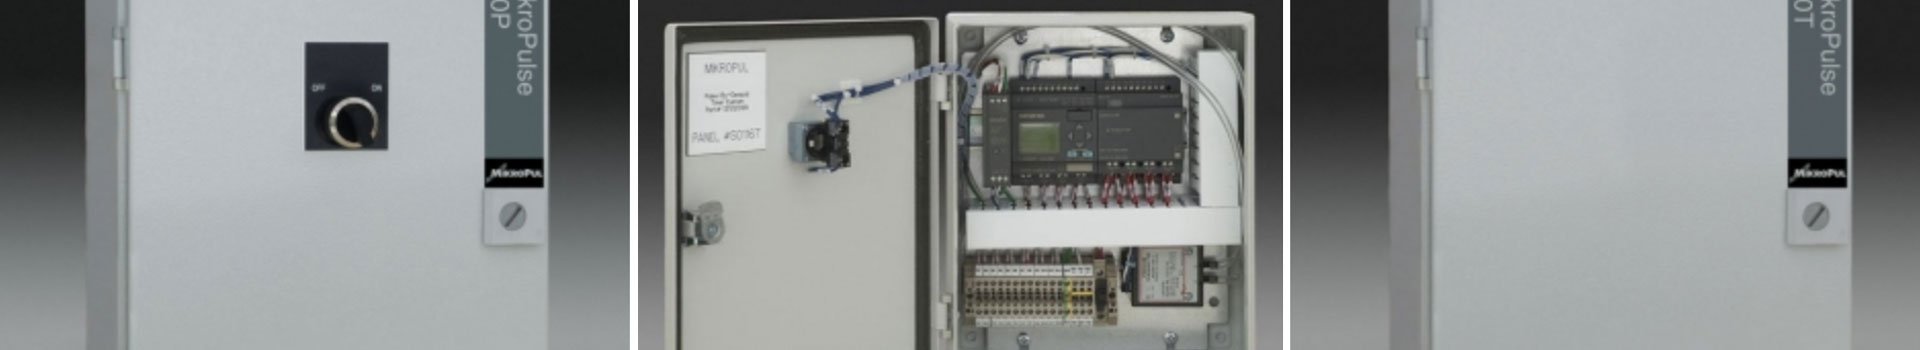 MikroPulse 100 Dust Collector Controller